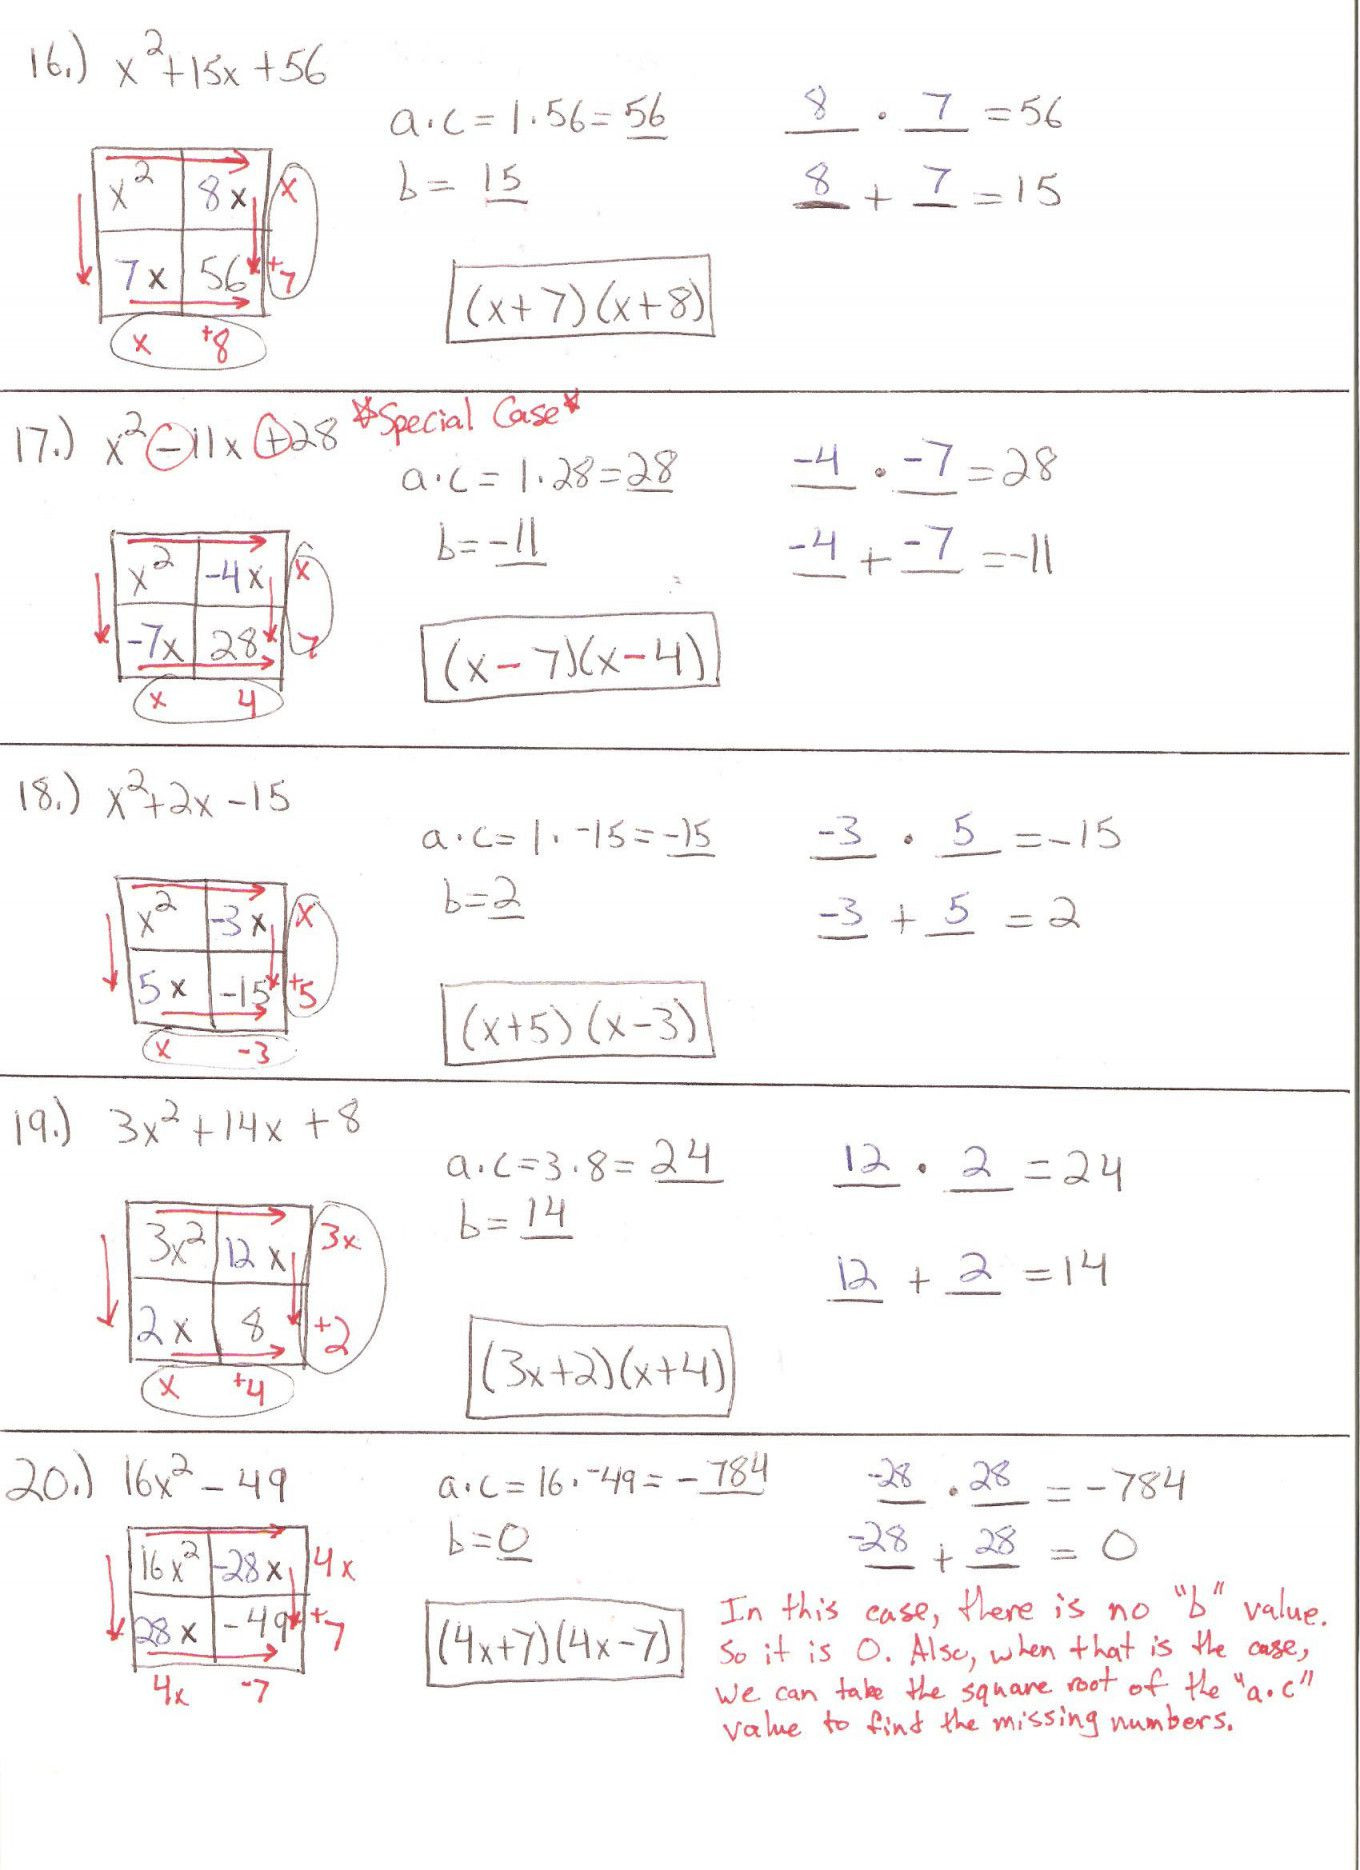 Factoring Worksheet Algebra 1 Factoring Polynomials Worksheet Maze